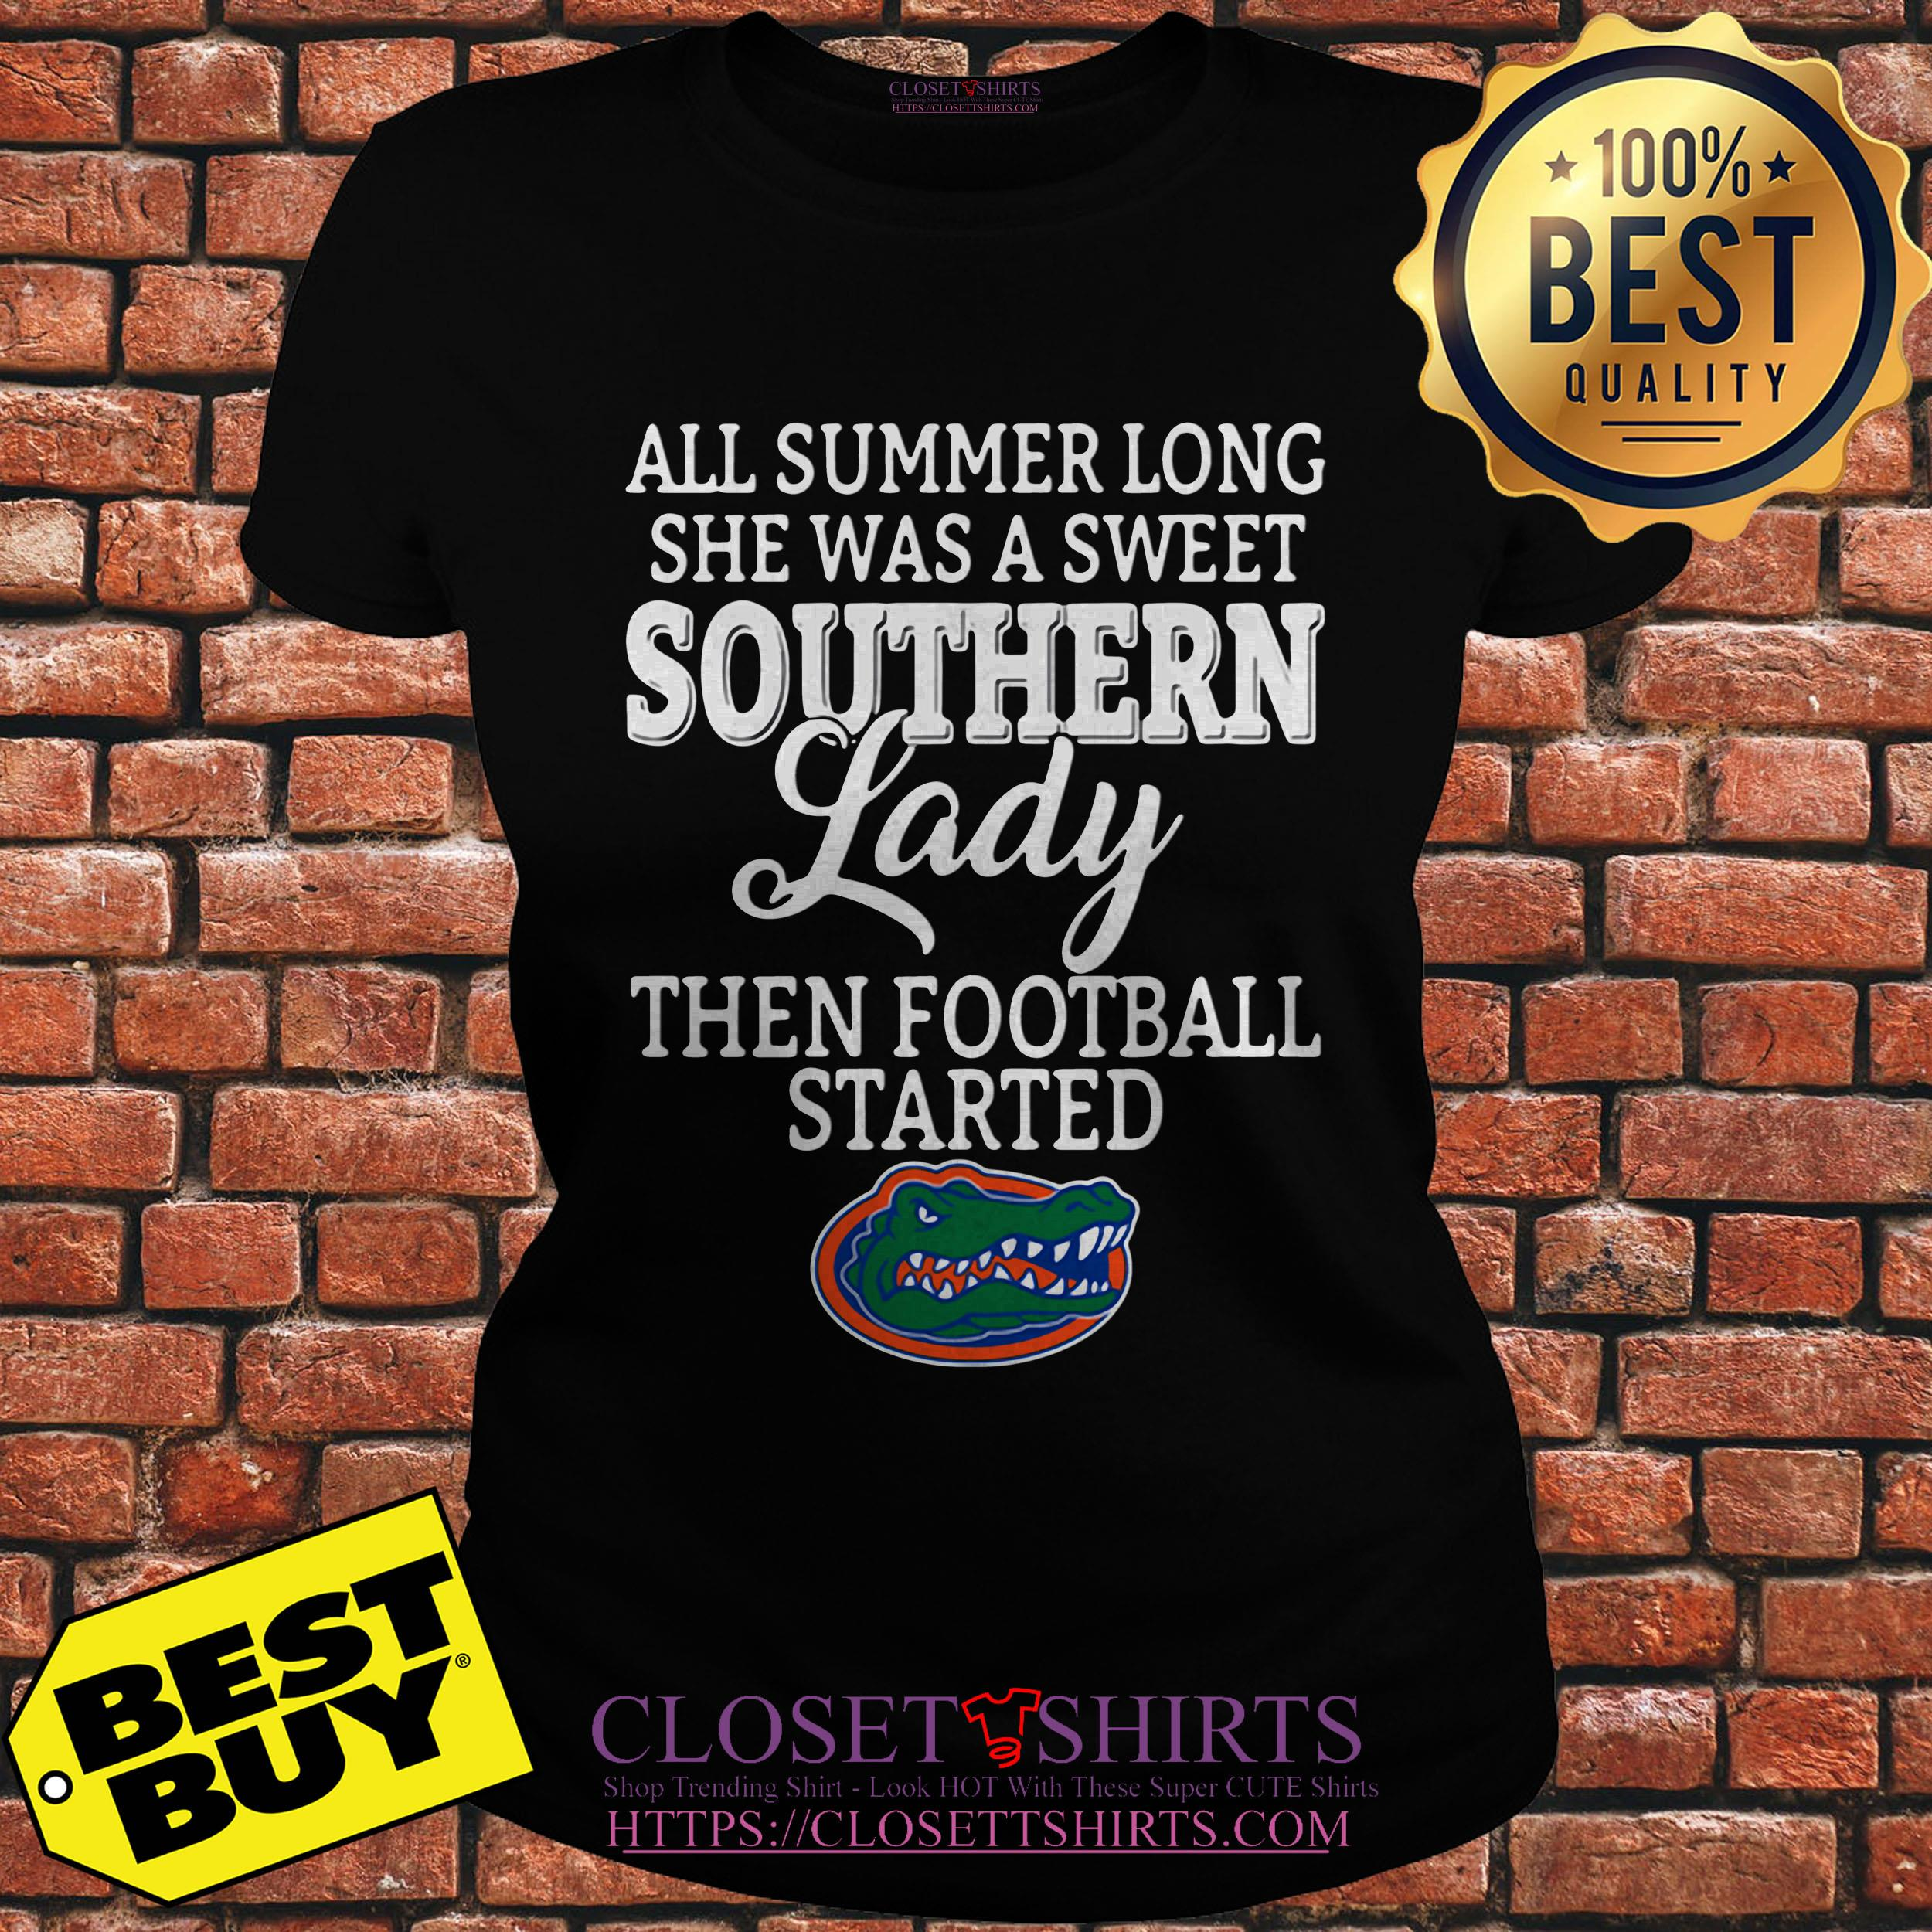 Floria Gators All Summer Long She Was A Sweet Southern Lady Then Football Started Ladies Tee